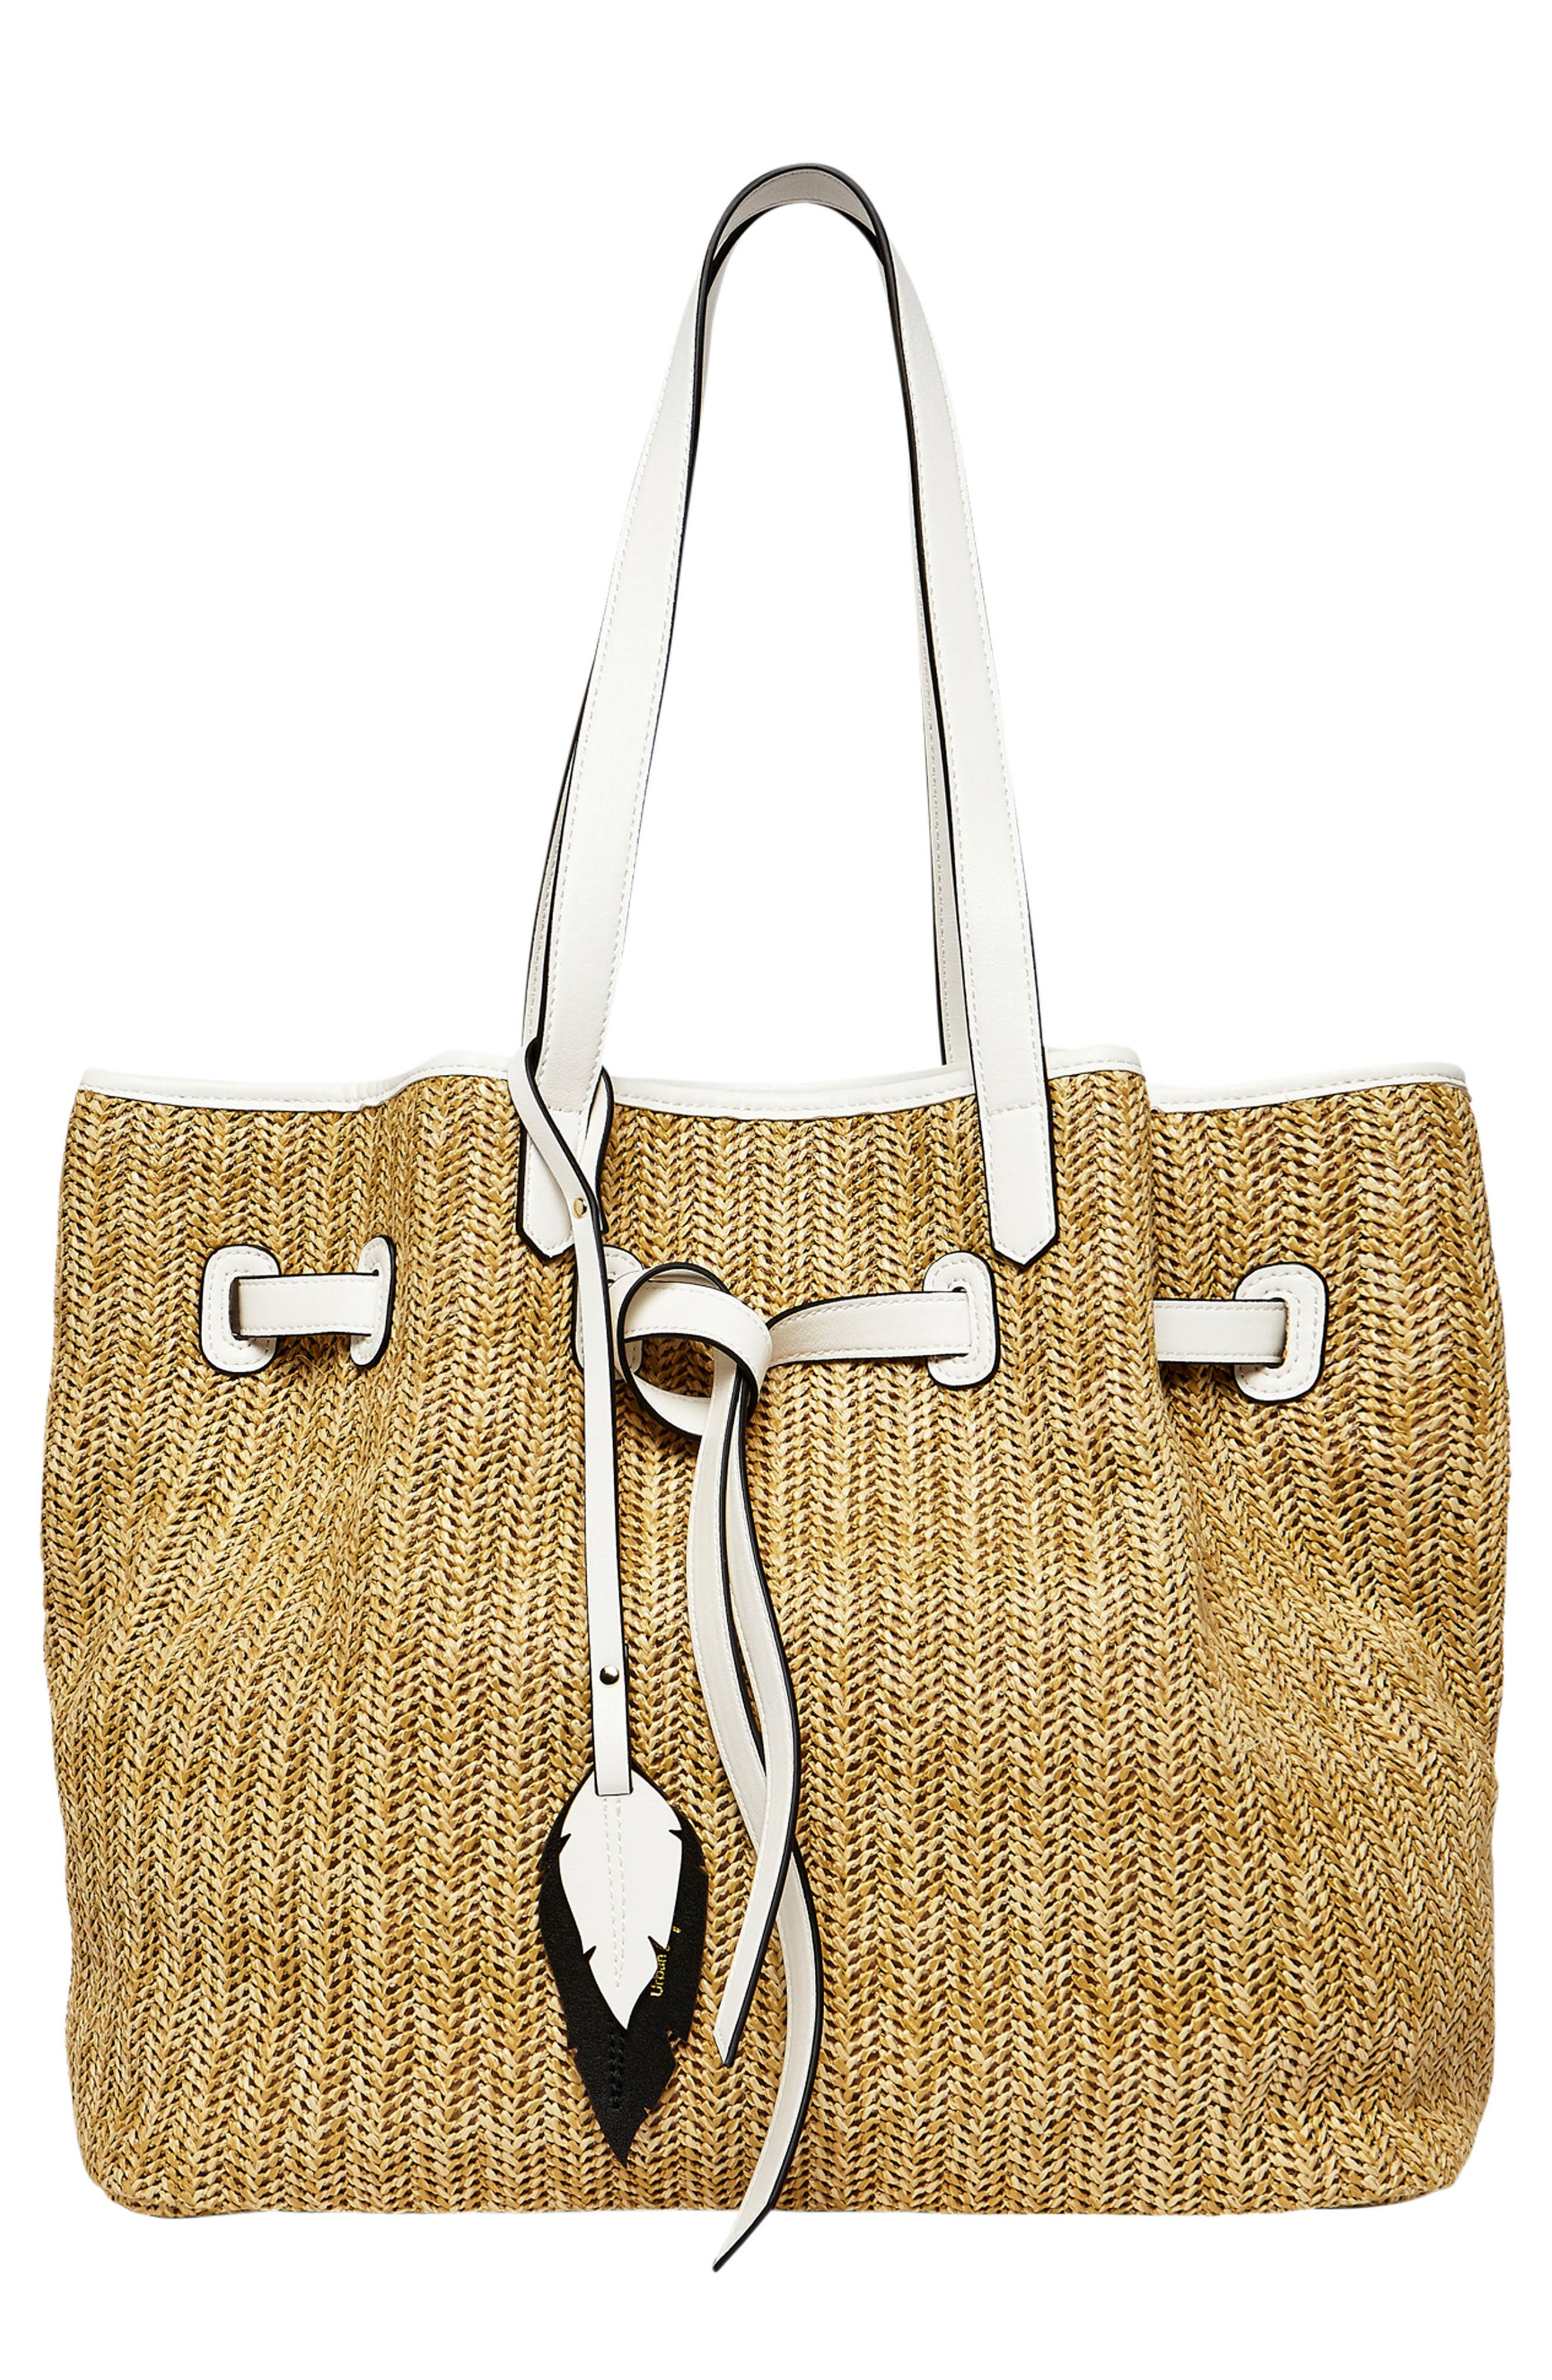 Wild Flower Straw Tote,                             Main thumbnail 1, color,                             Beige